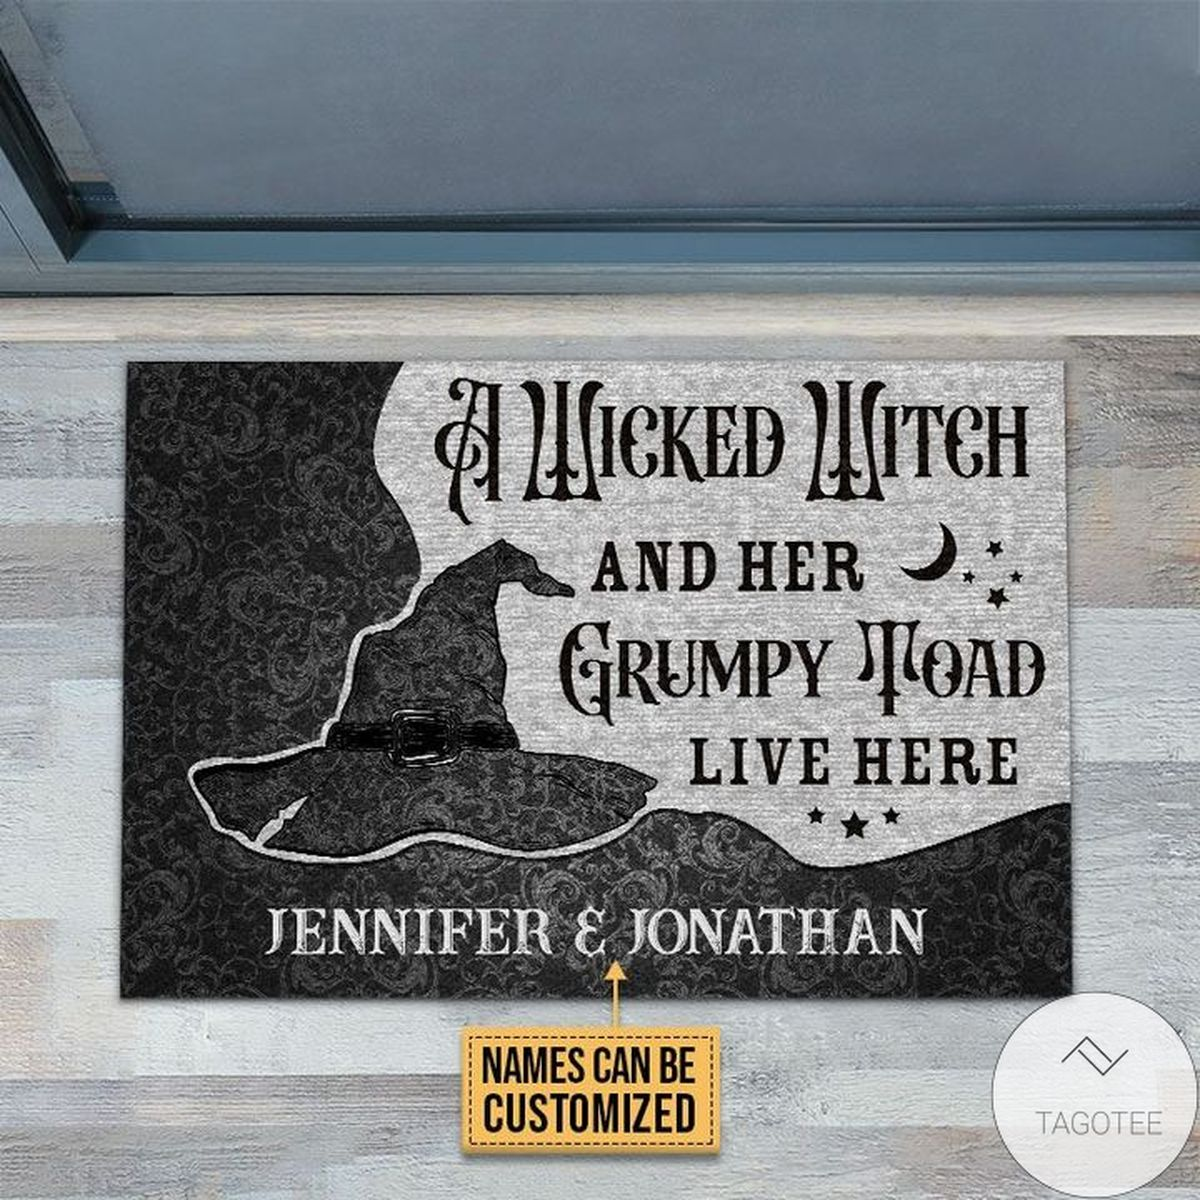 Great Personalized Wicked Witch Grumpy Toad Live Here Doormat